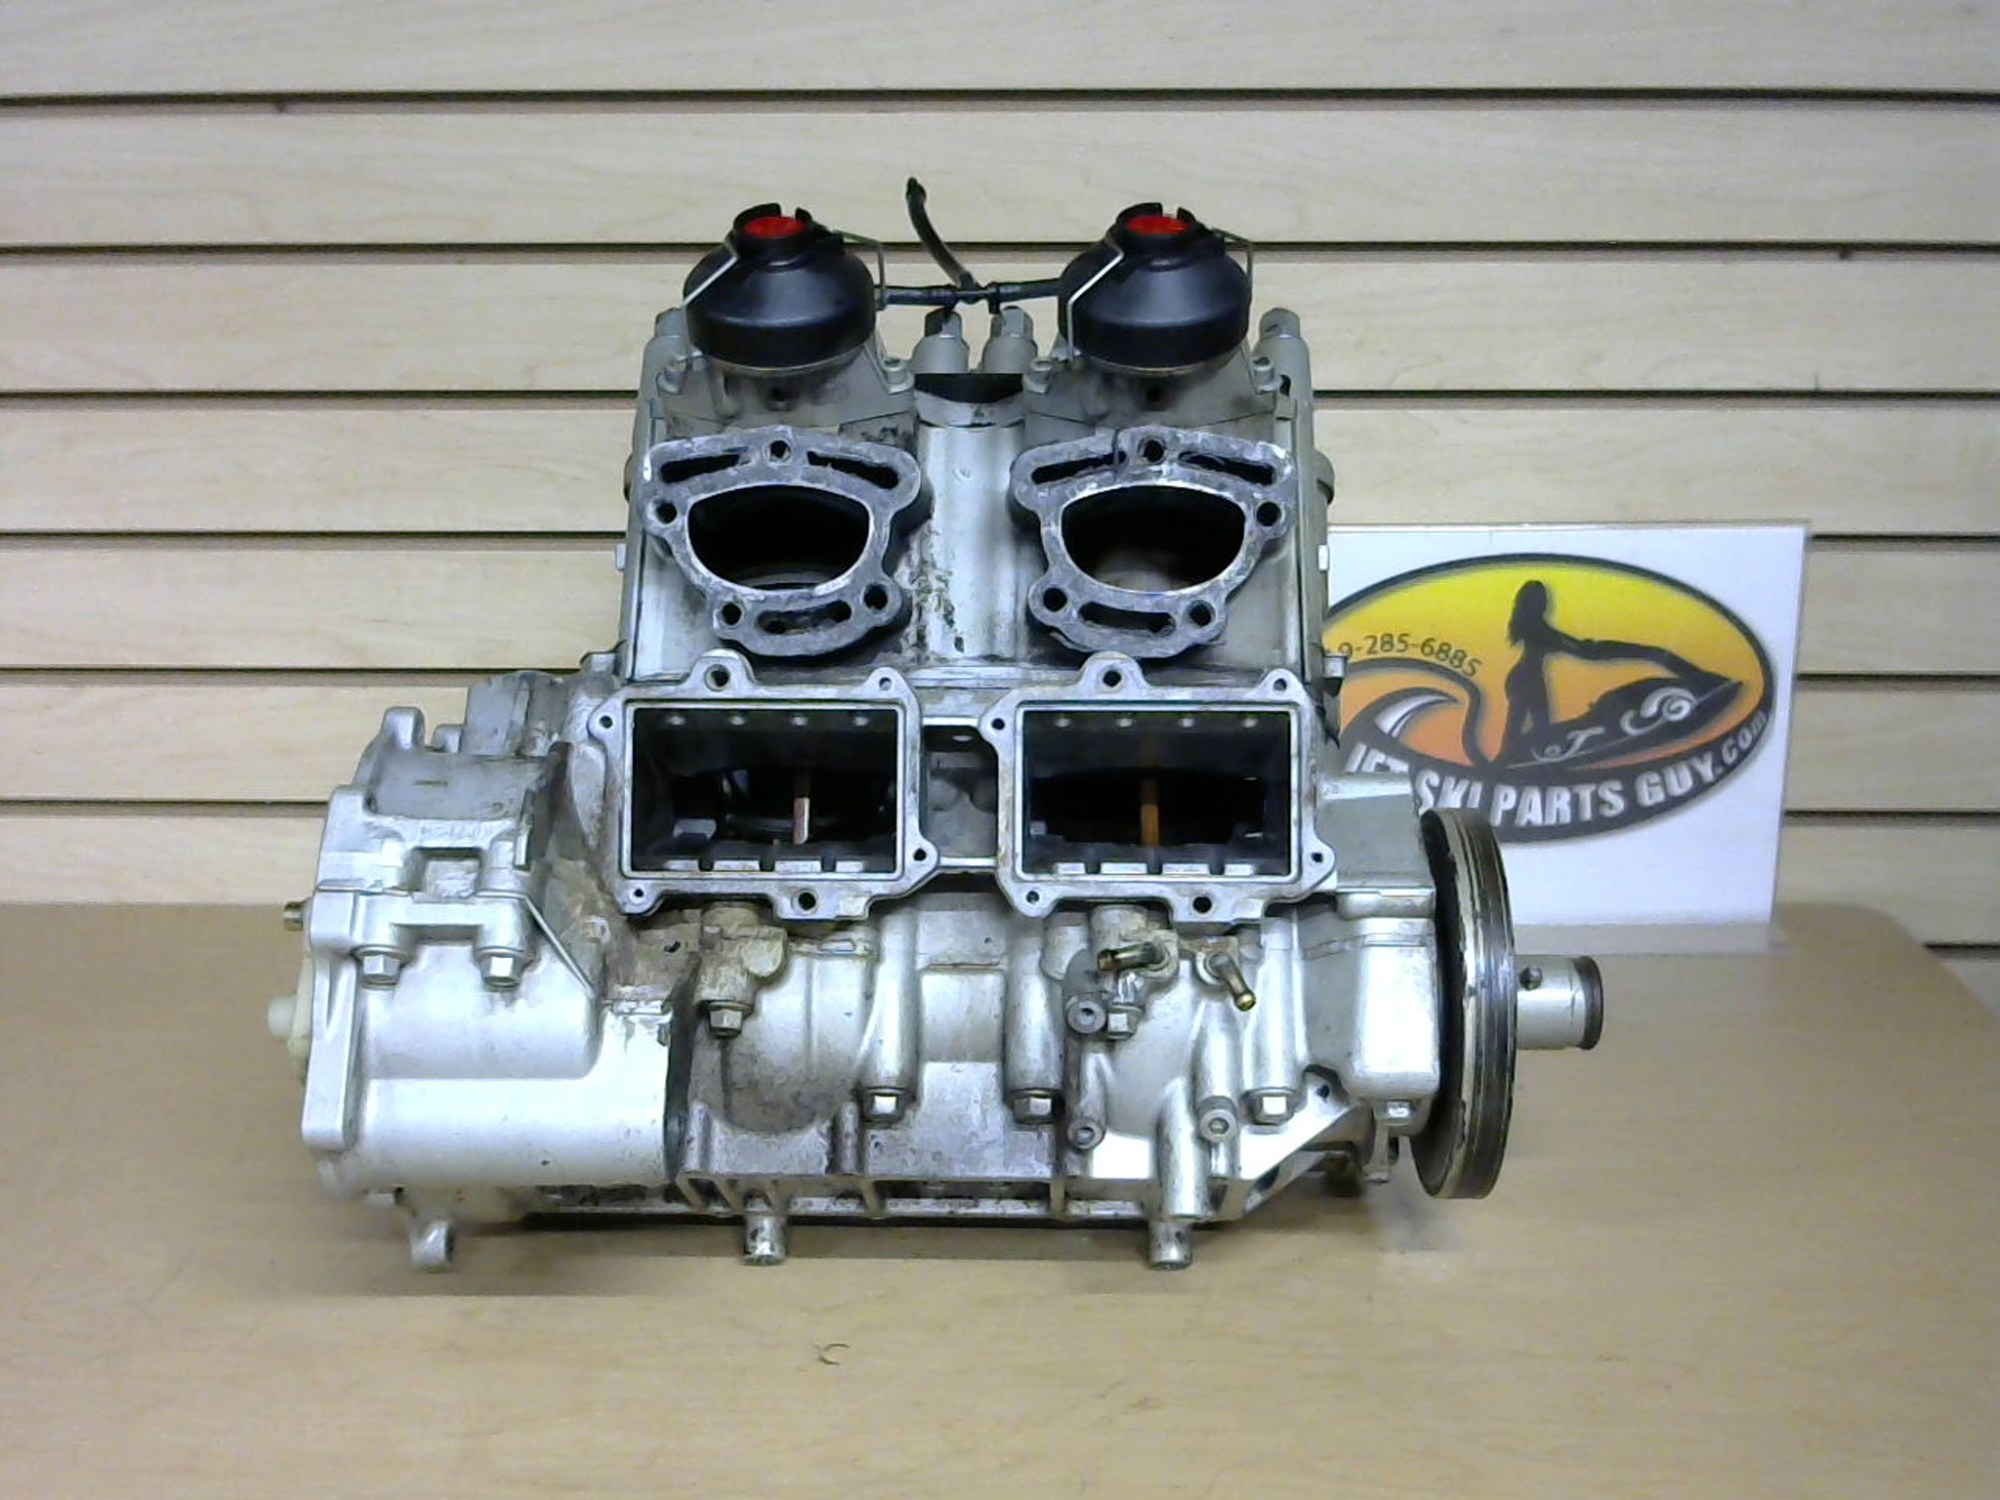 hight resolution of seadoo 951 engine motor gsx gtx xp limited gtx rx lrv sportster le 290094702